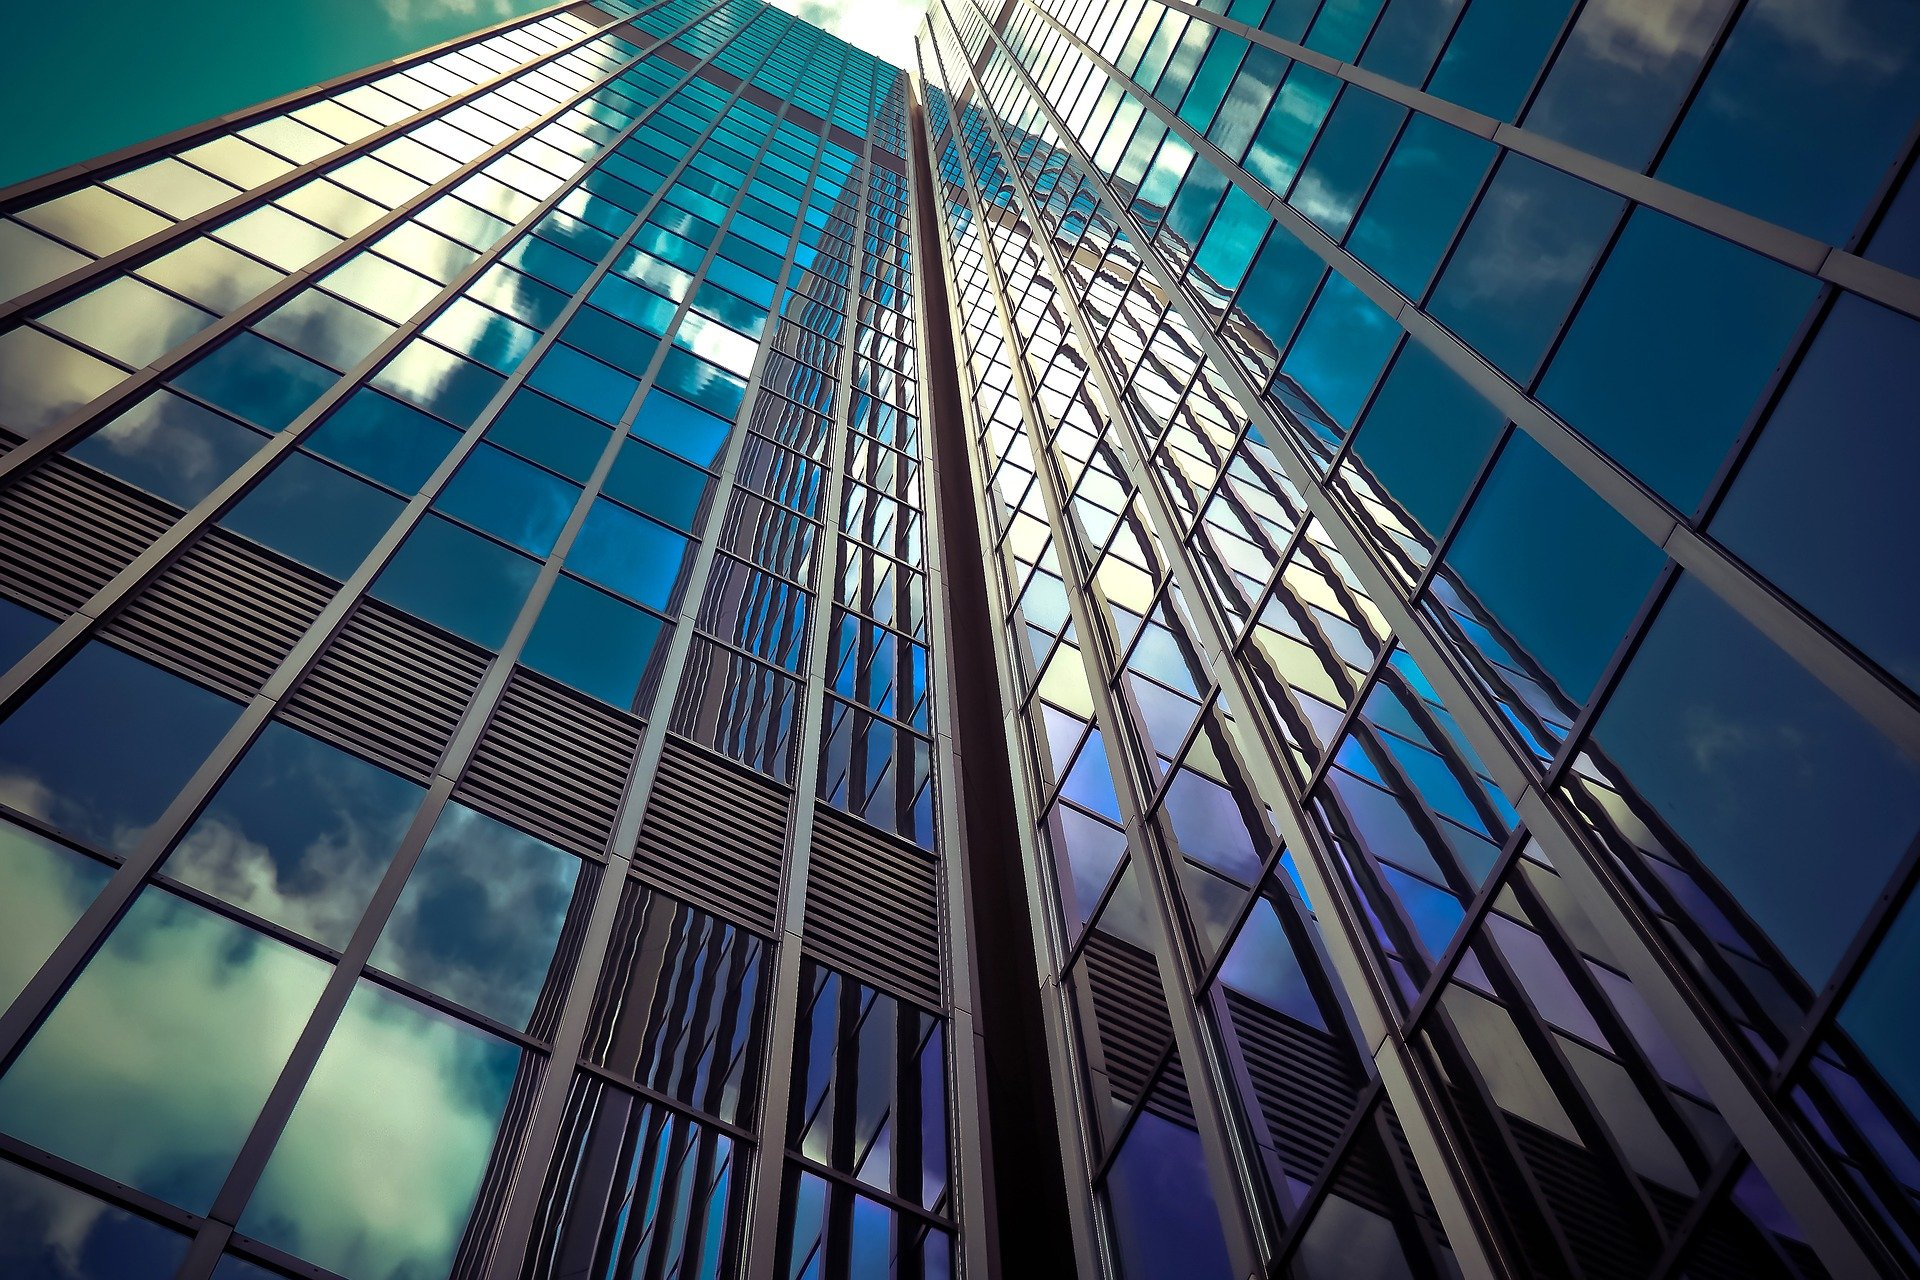 the importance of clean windows